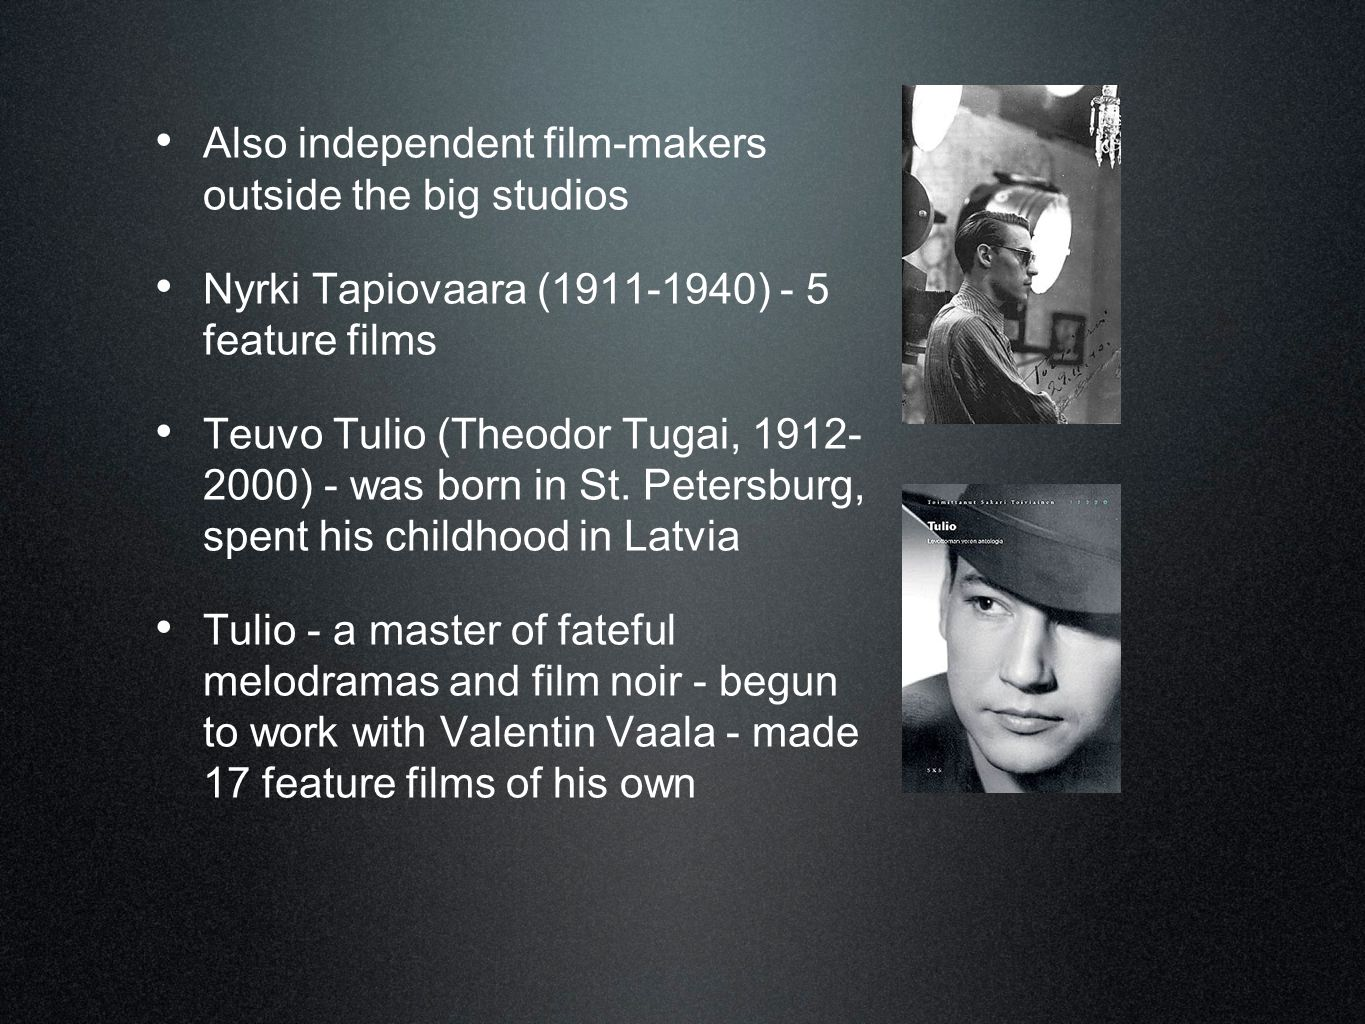 • Also independent film-makers outside the big studios • Nyrki Tapiovaara (1911-1940) - 5 feature films • Teuvo Tulio (Theodor Tugai, 1912- 2000) - wa